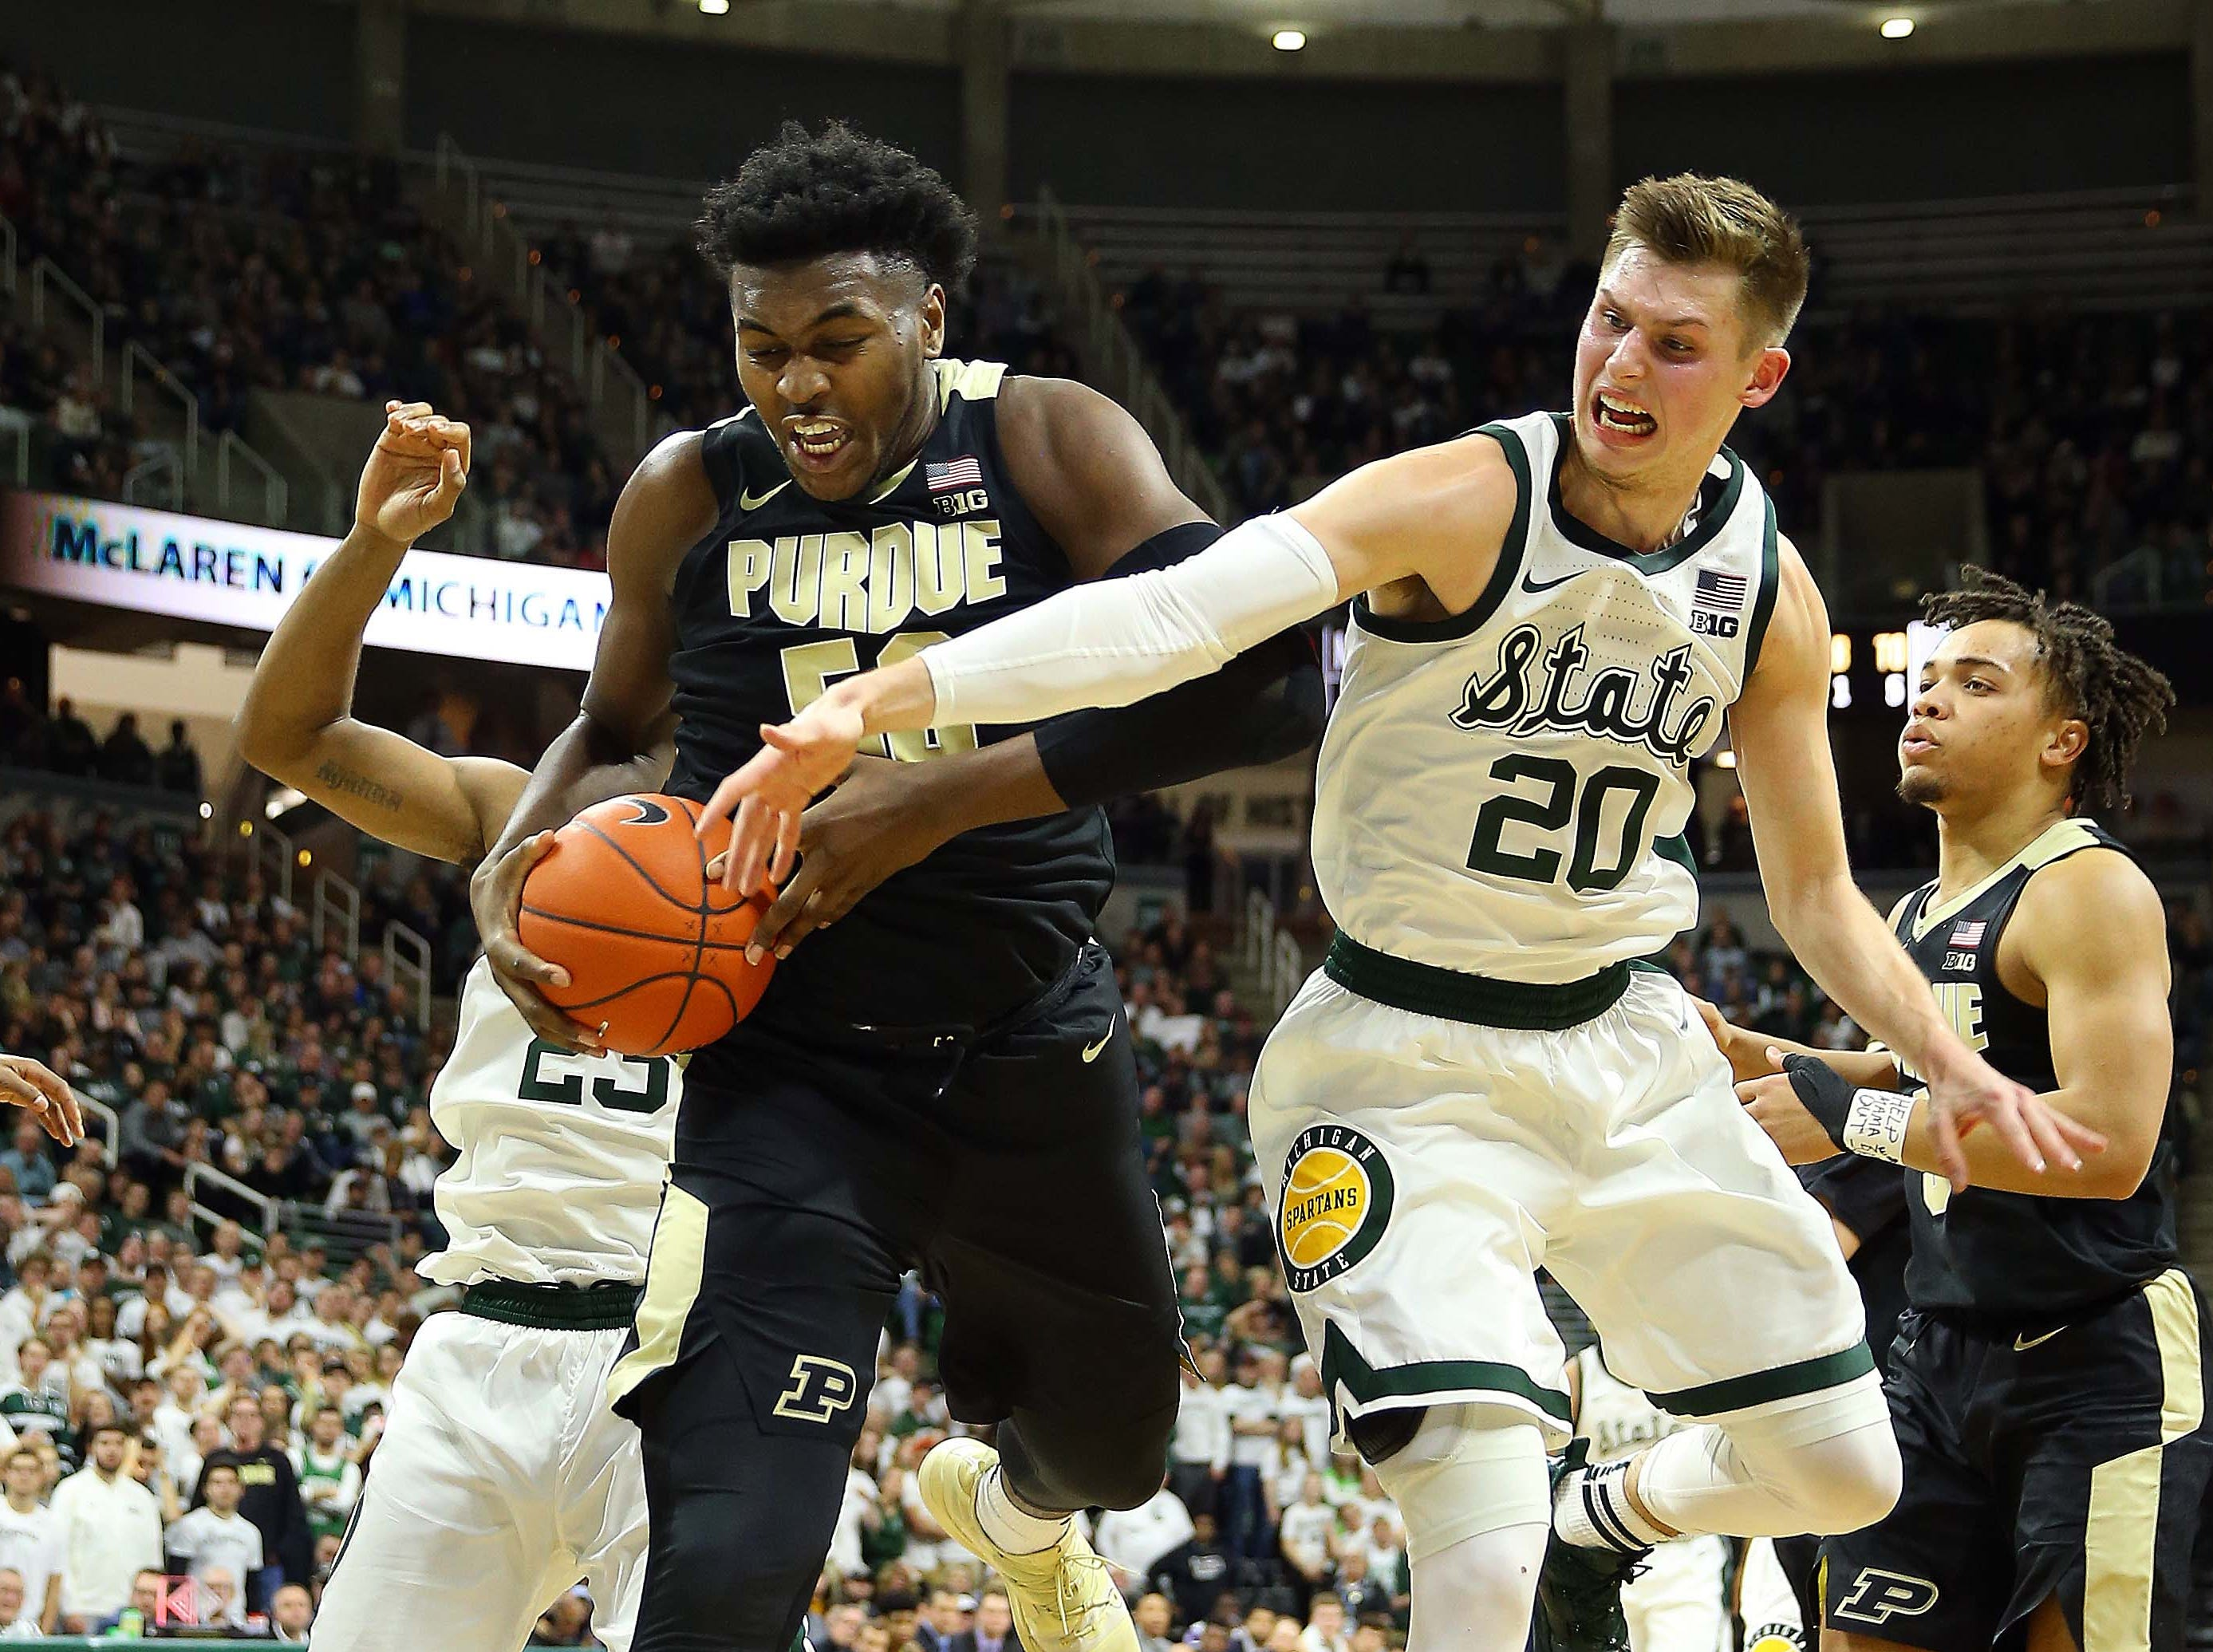 Jan 8, 2019; East Lansing, MI, USA; Purdue Boilermakers forward Trevion Williams (50) and Michigan State Spartans guard Matt McQuaid (20) fight for a loose ball during the second half of a game at the Breslin Center. Mandatory Credit: Mike Carter-USA TODAY Sports